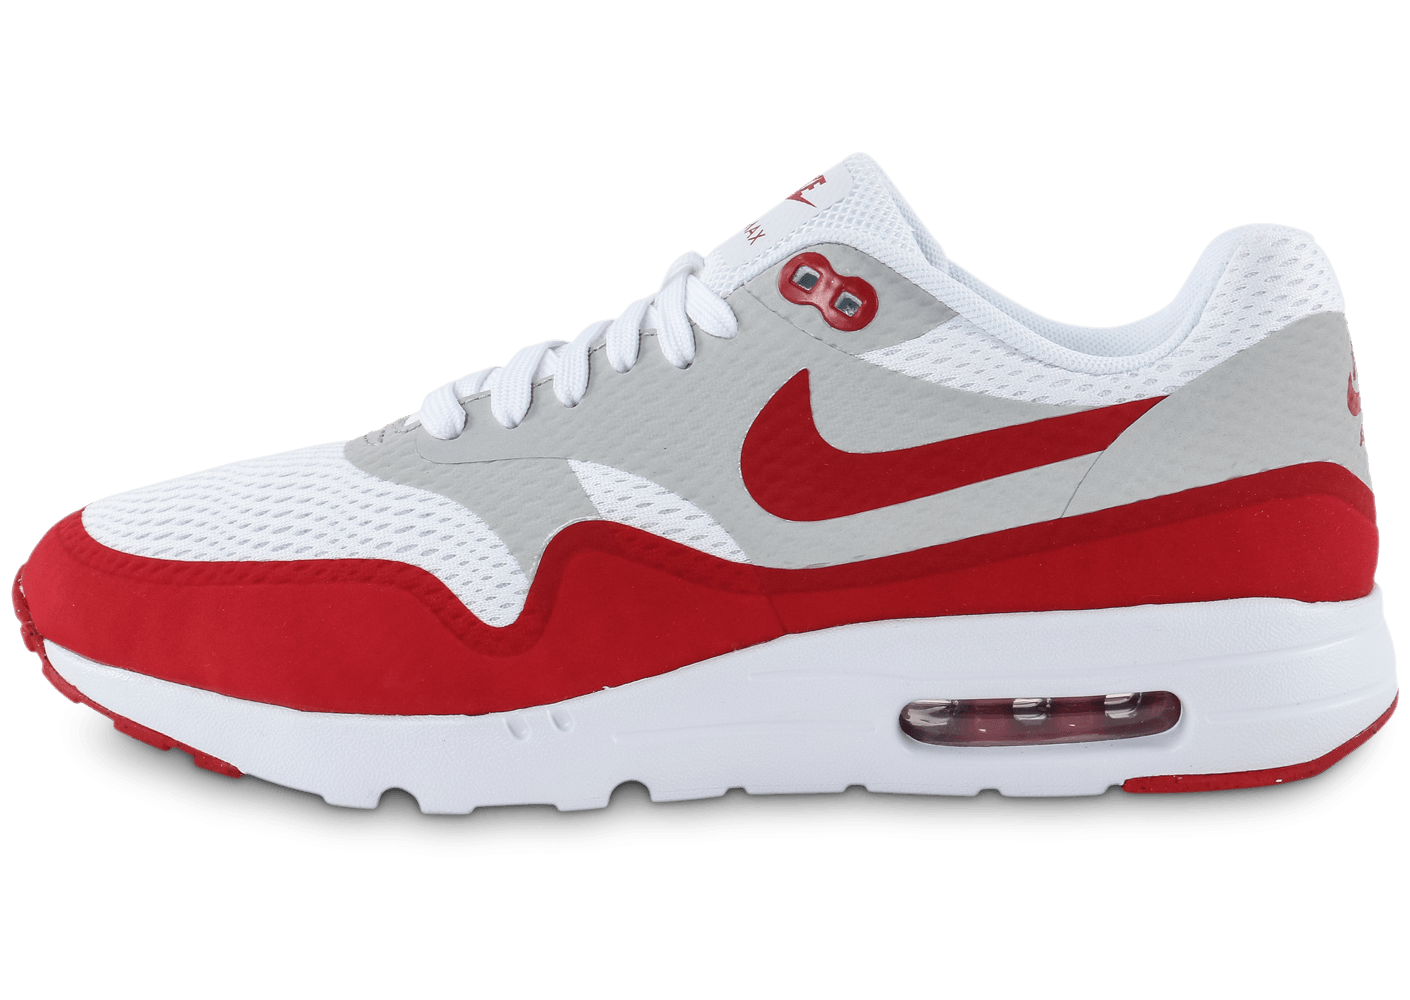 nike air max rouge blanc, Cliquez pour zoomer Chaussures Nike Air Max 1 Ultra Essential blanc rouge vue extérieure Chaussures ...